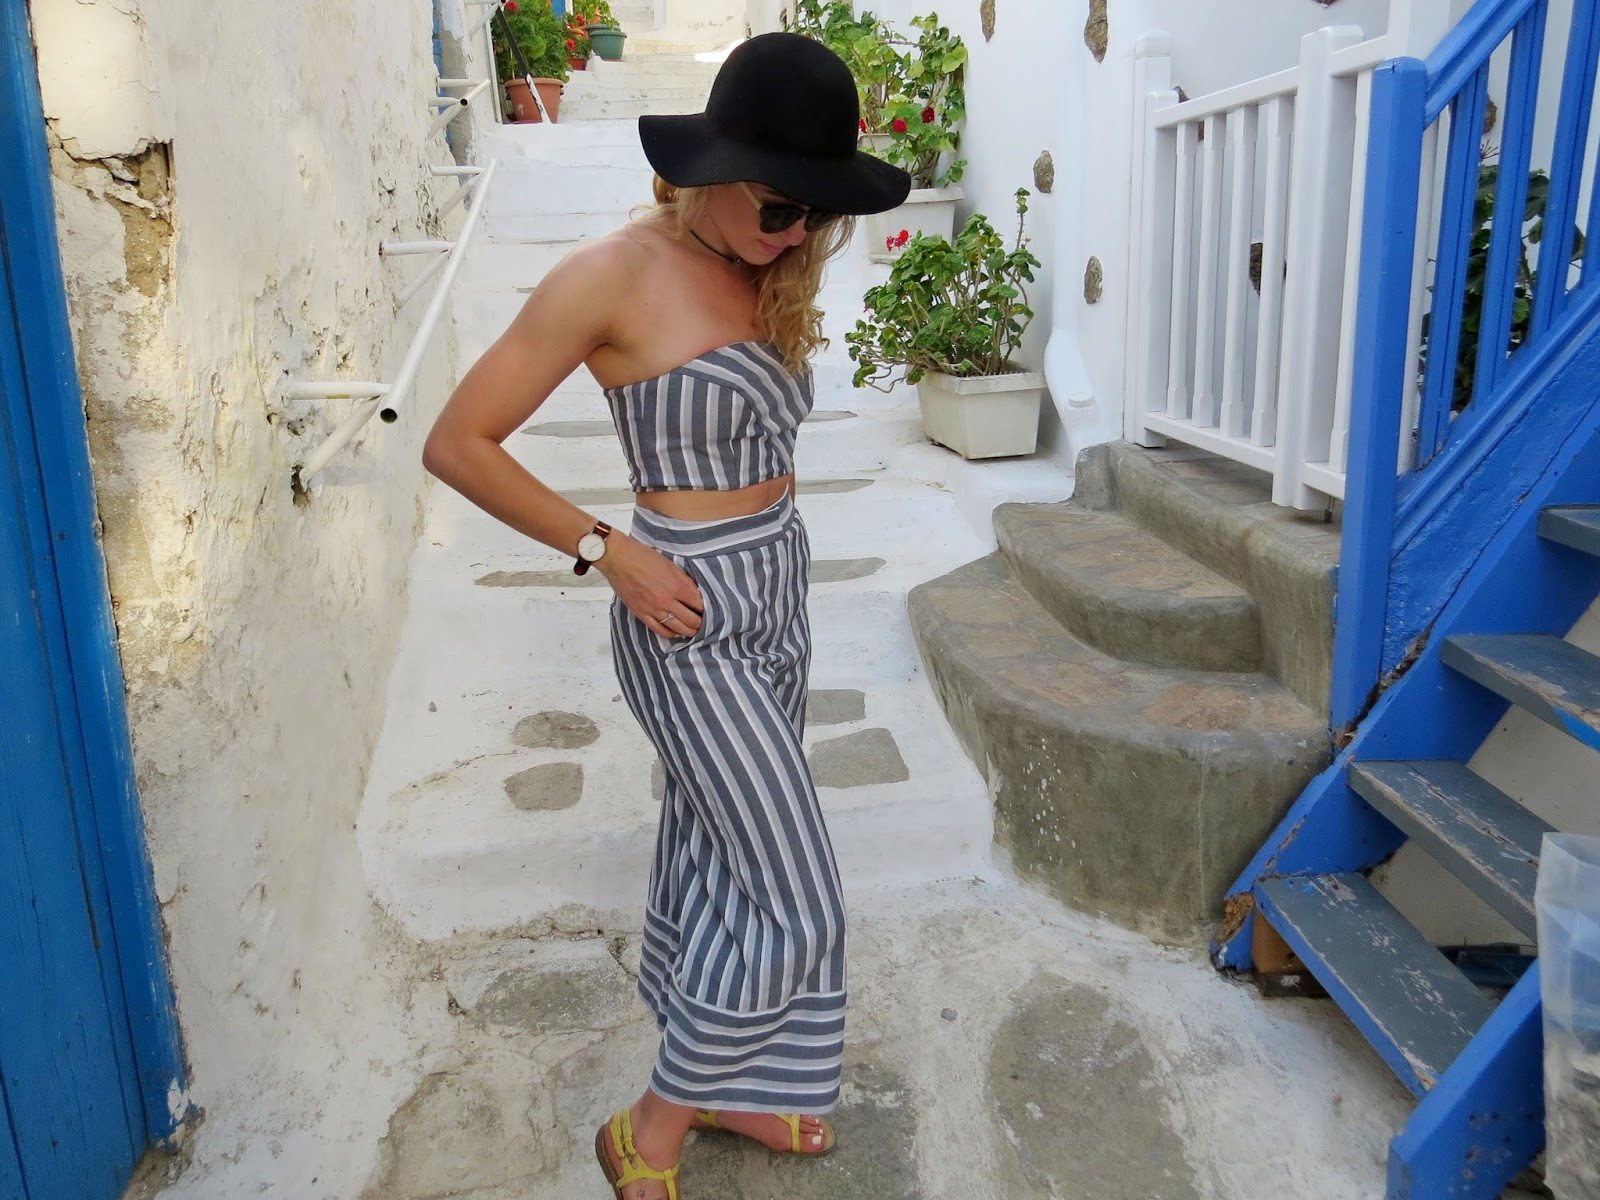 a7a96c209aa6 ERIN KAY WILLIAMS: OOTD; My Perfect Summer Co-ords